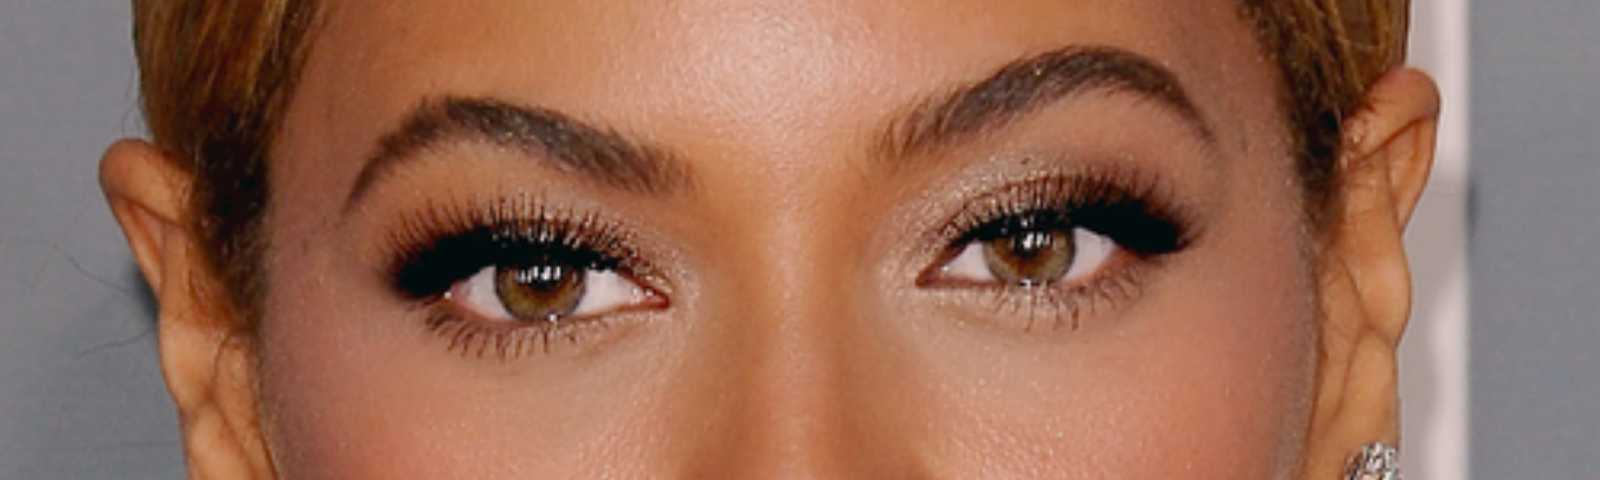 We Tried The Top Eyelash Trends So You Dont Have To Omgfacts